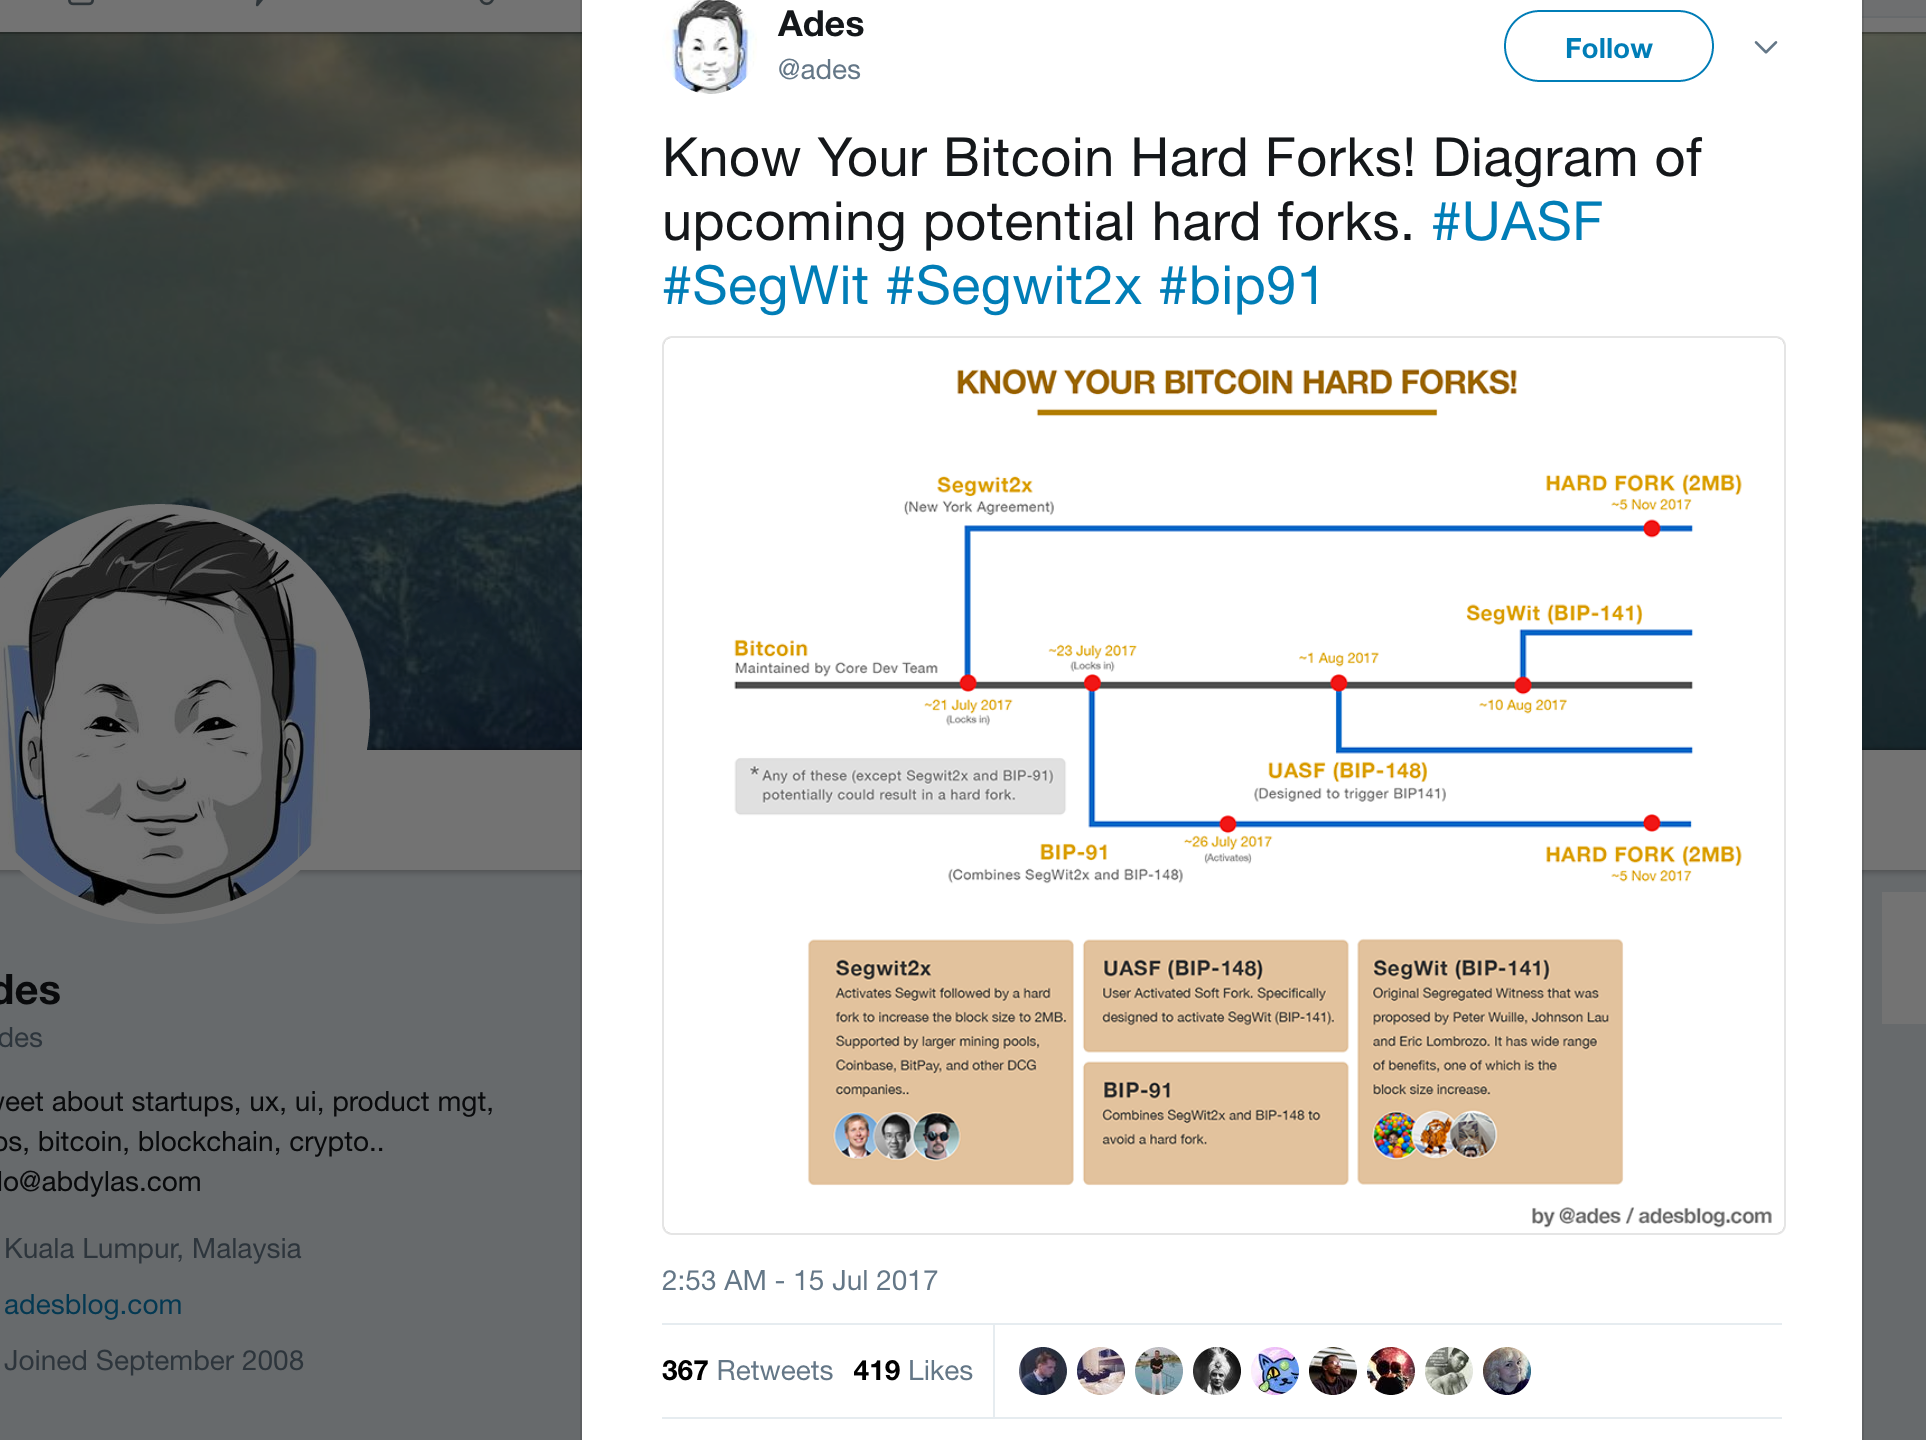 """""""Know Your Bitcoin Hard Forks! Diagram of upcoming potential hard forks. #UASF #SegWit #Segwit2x #bip91"""""""